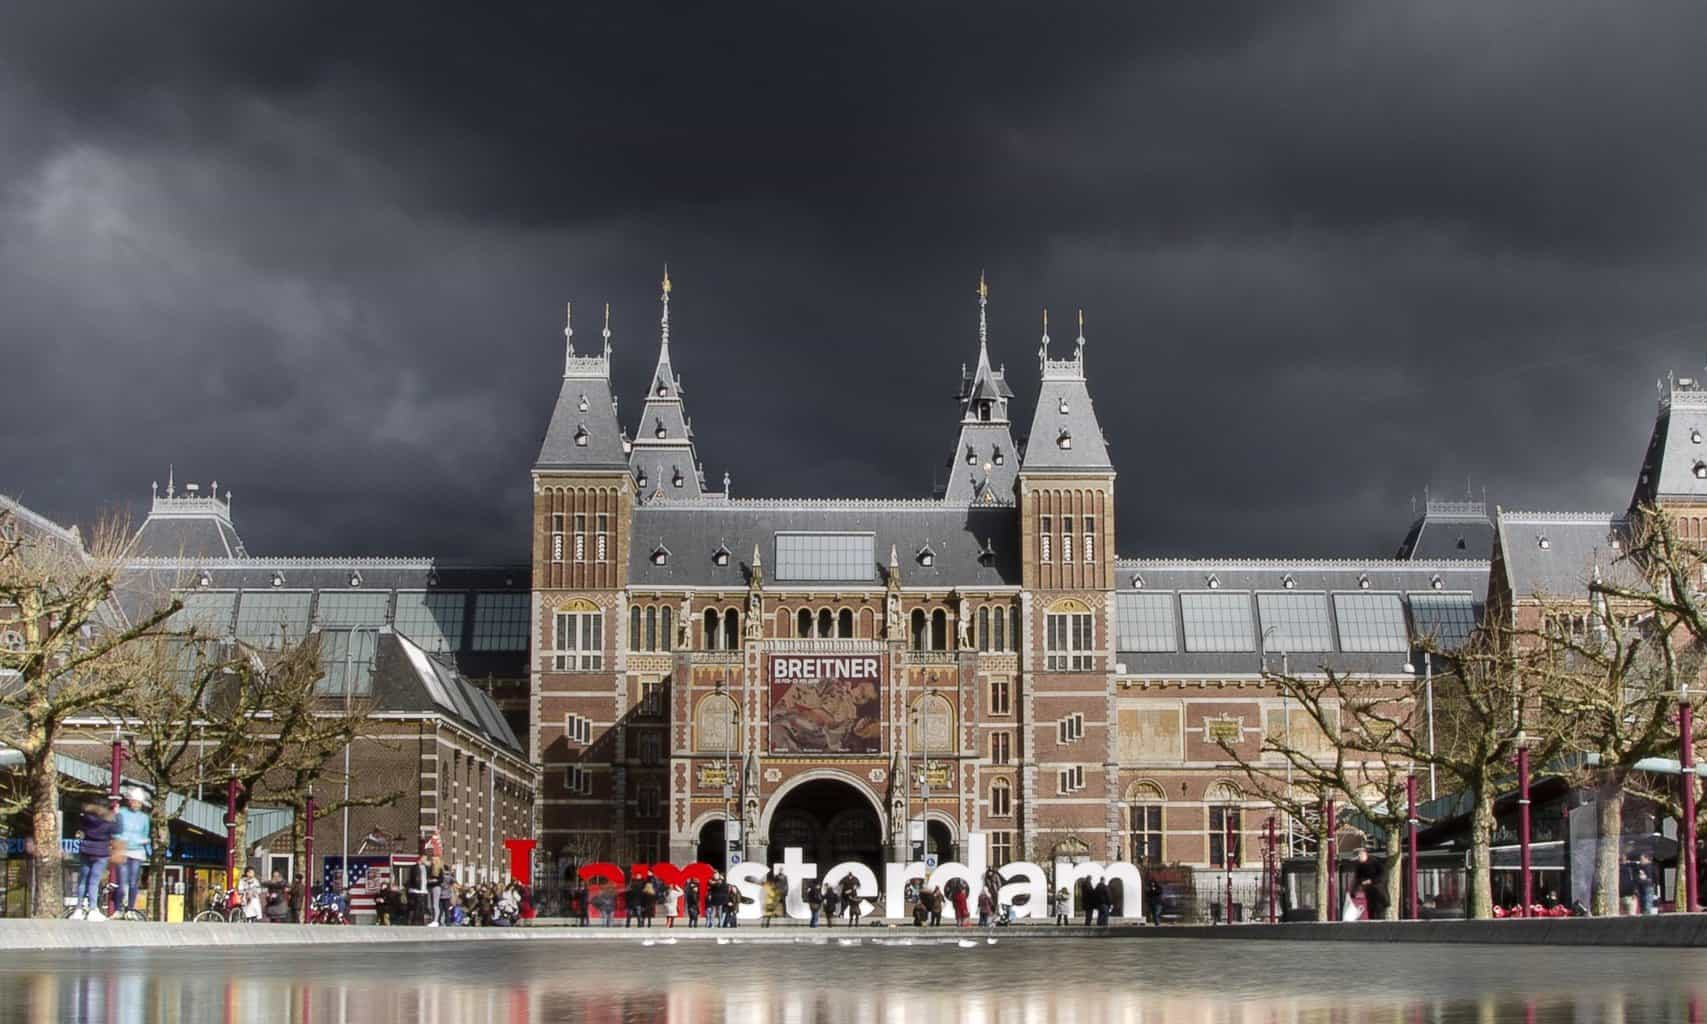 The Rijksmuseum under a dramatic sky in Amsterdam.